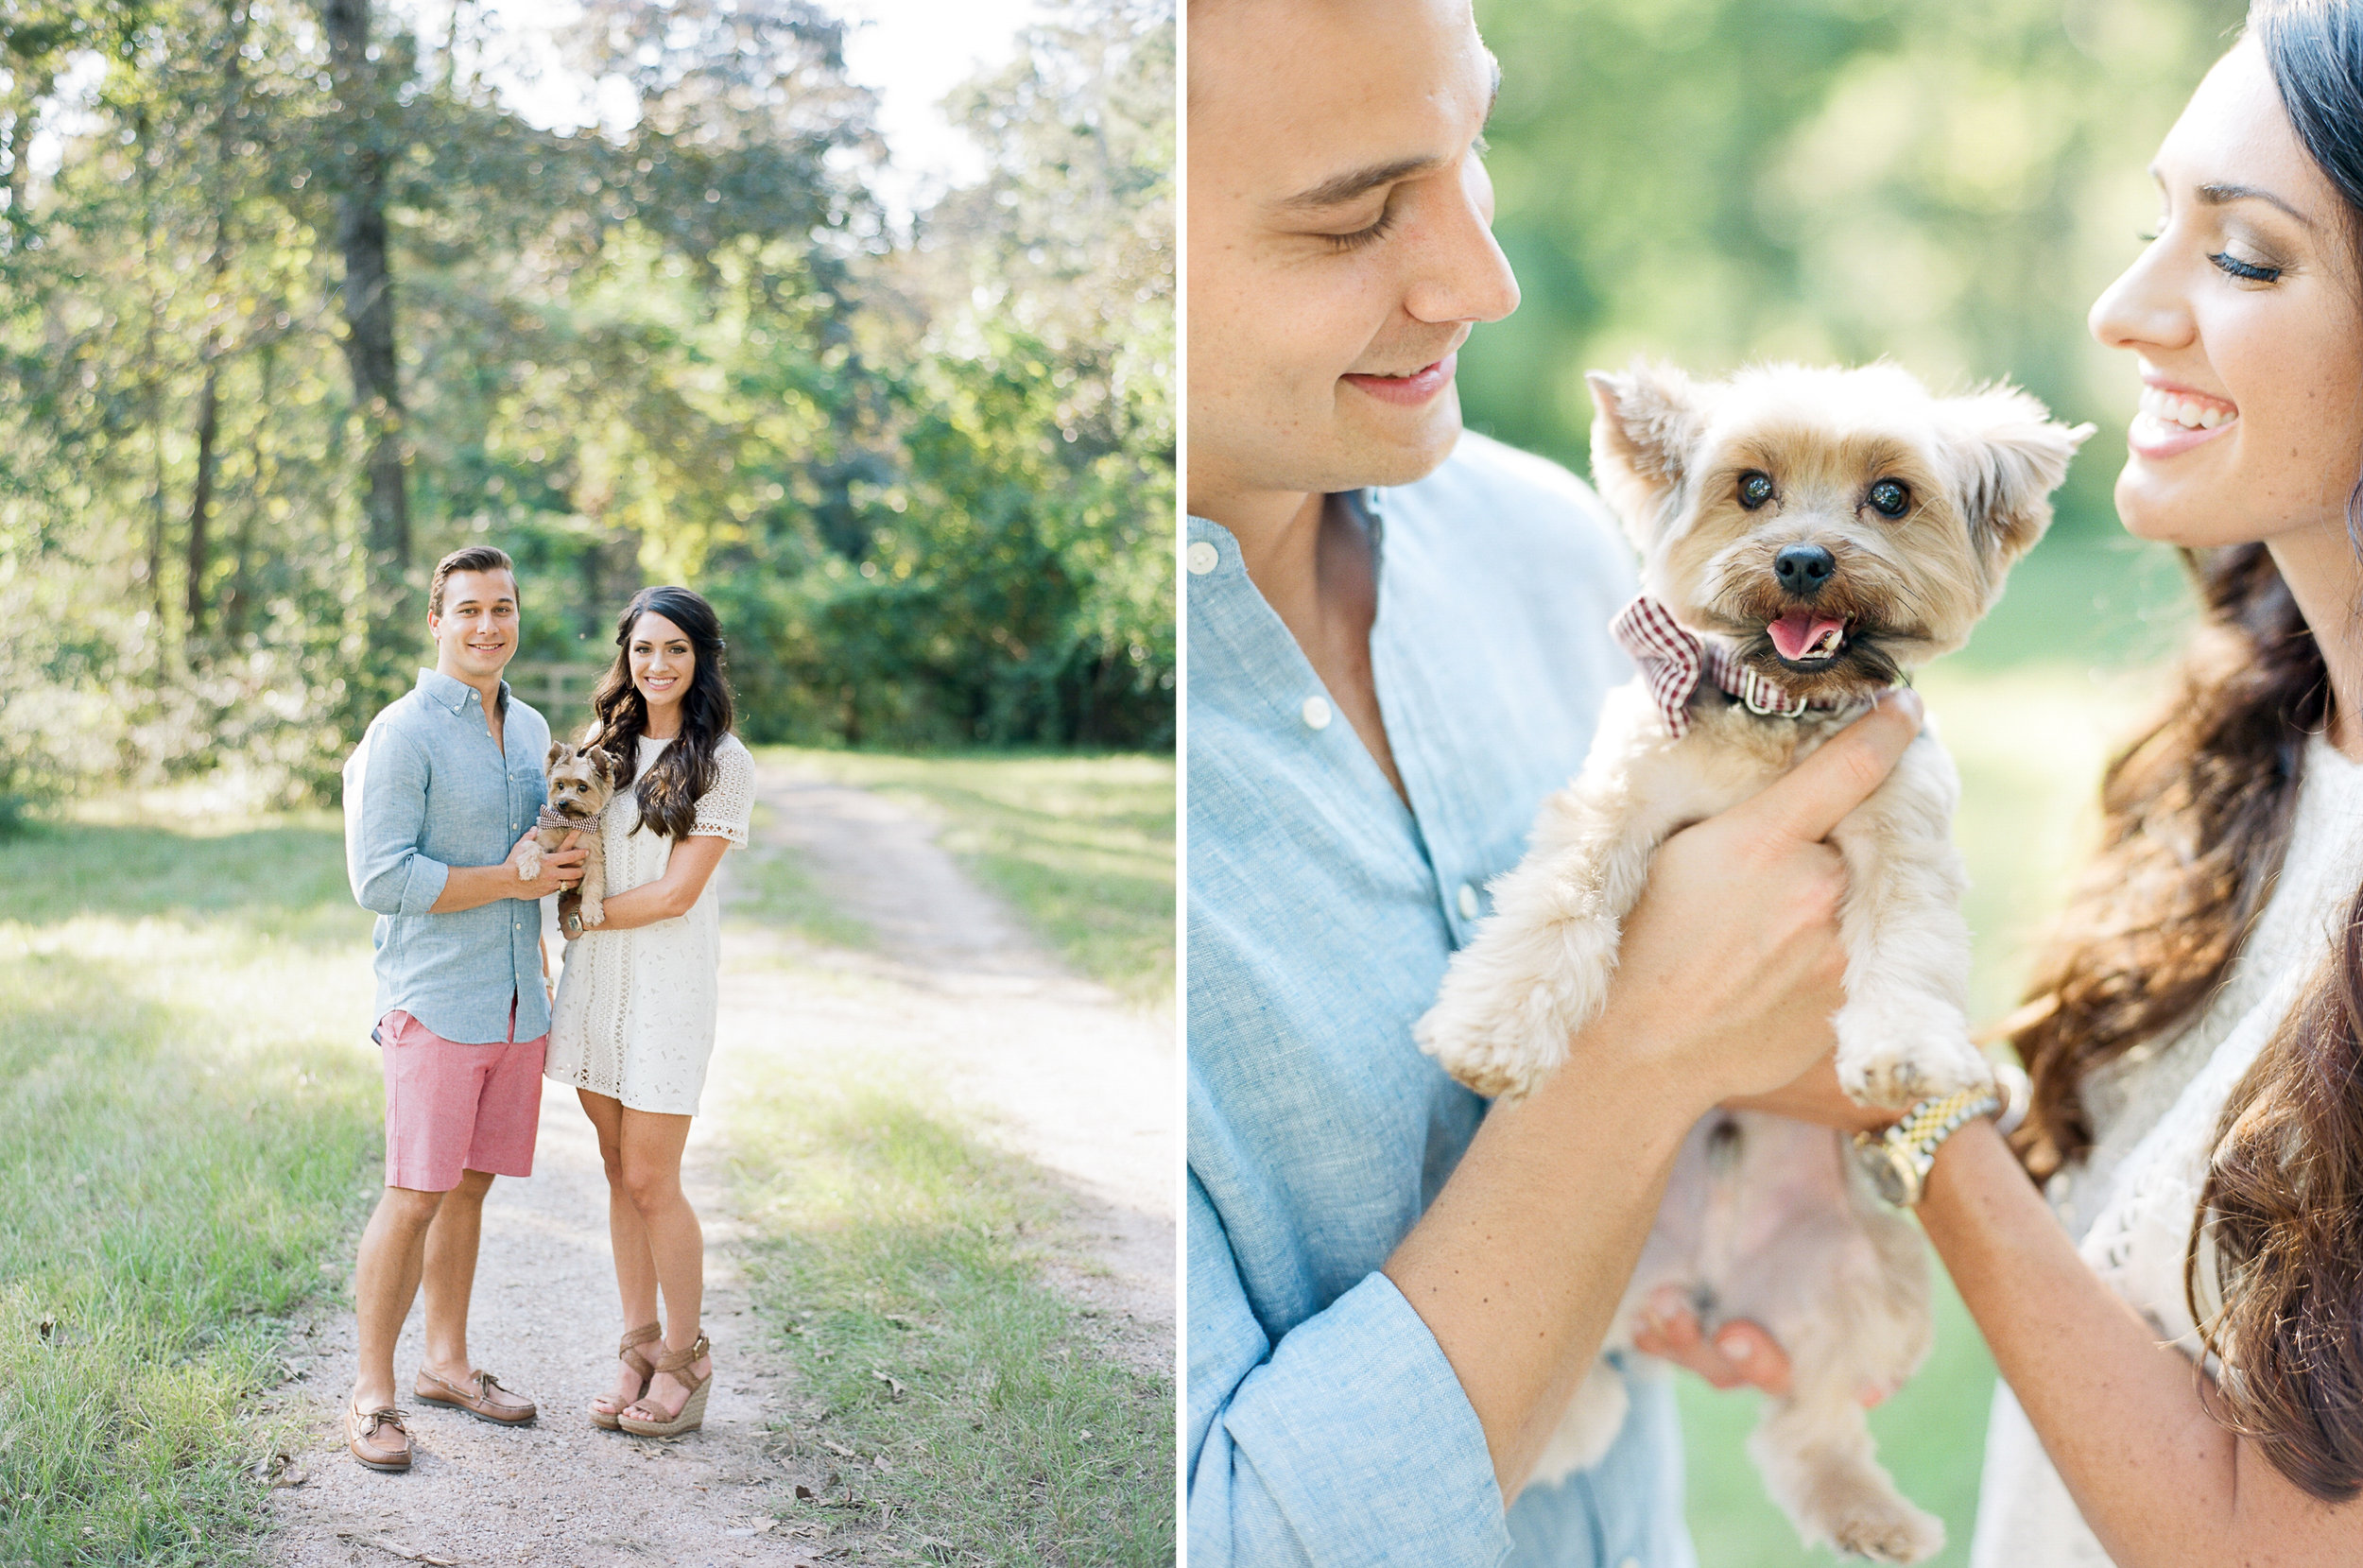 houston-wedding-photographer-engagements-engagement-session-houston-portrait-photographer-film-austin-wedding-photography-108.jpg